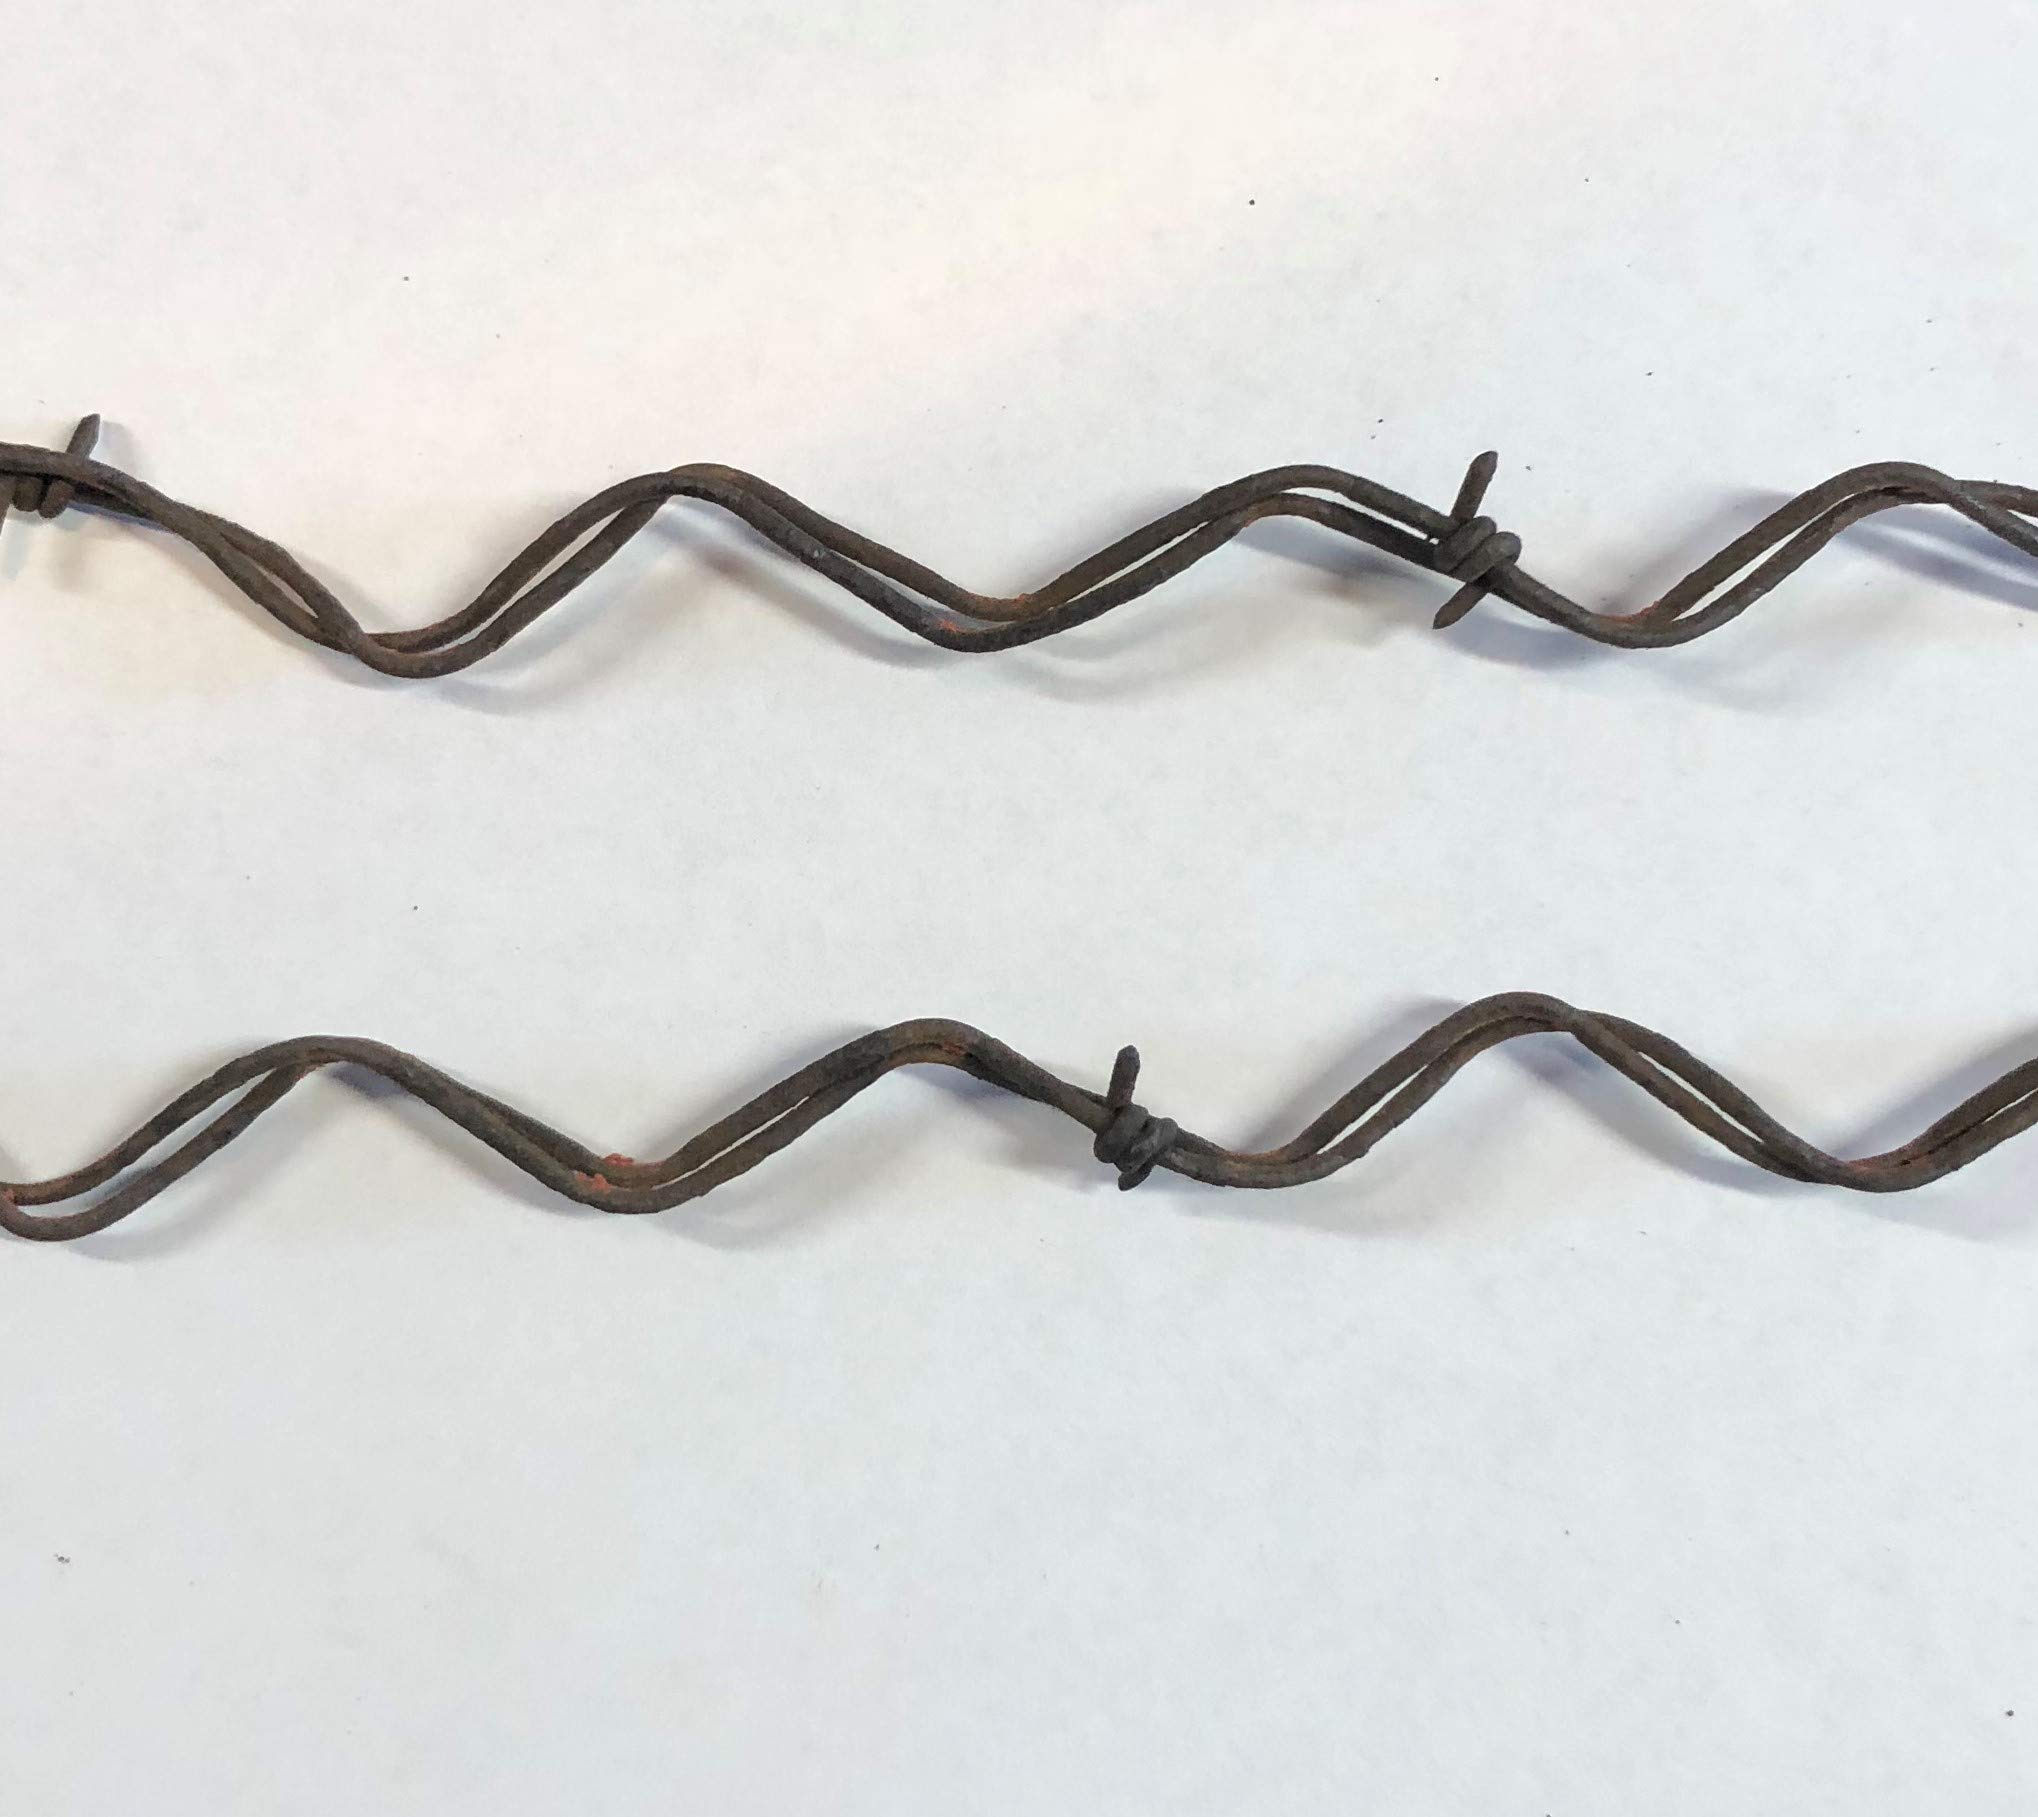 Wire Tight Fence Crimping Tool - Ranch Wire Tightener and Repair. Slick, High Tensile and Barbed Wire by Wire Tight (Image #6)